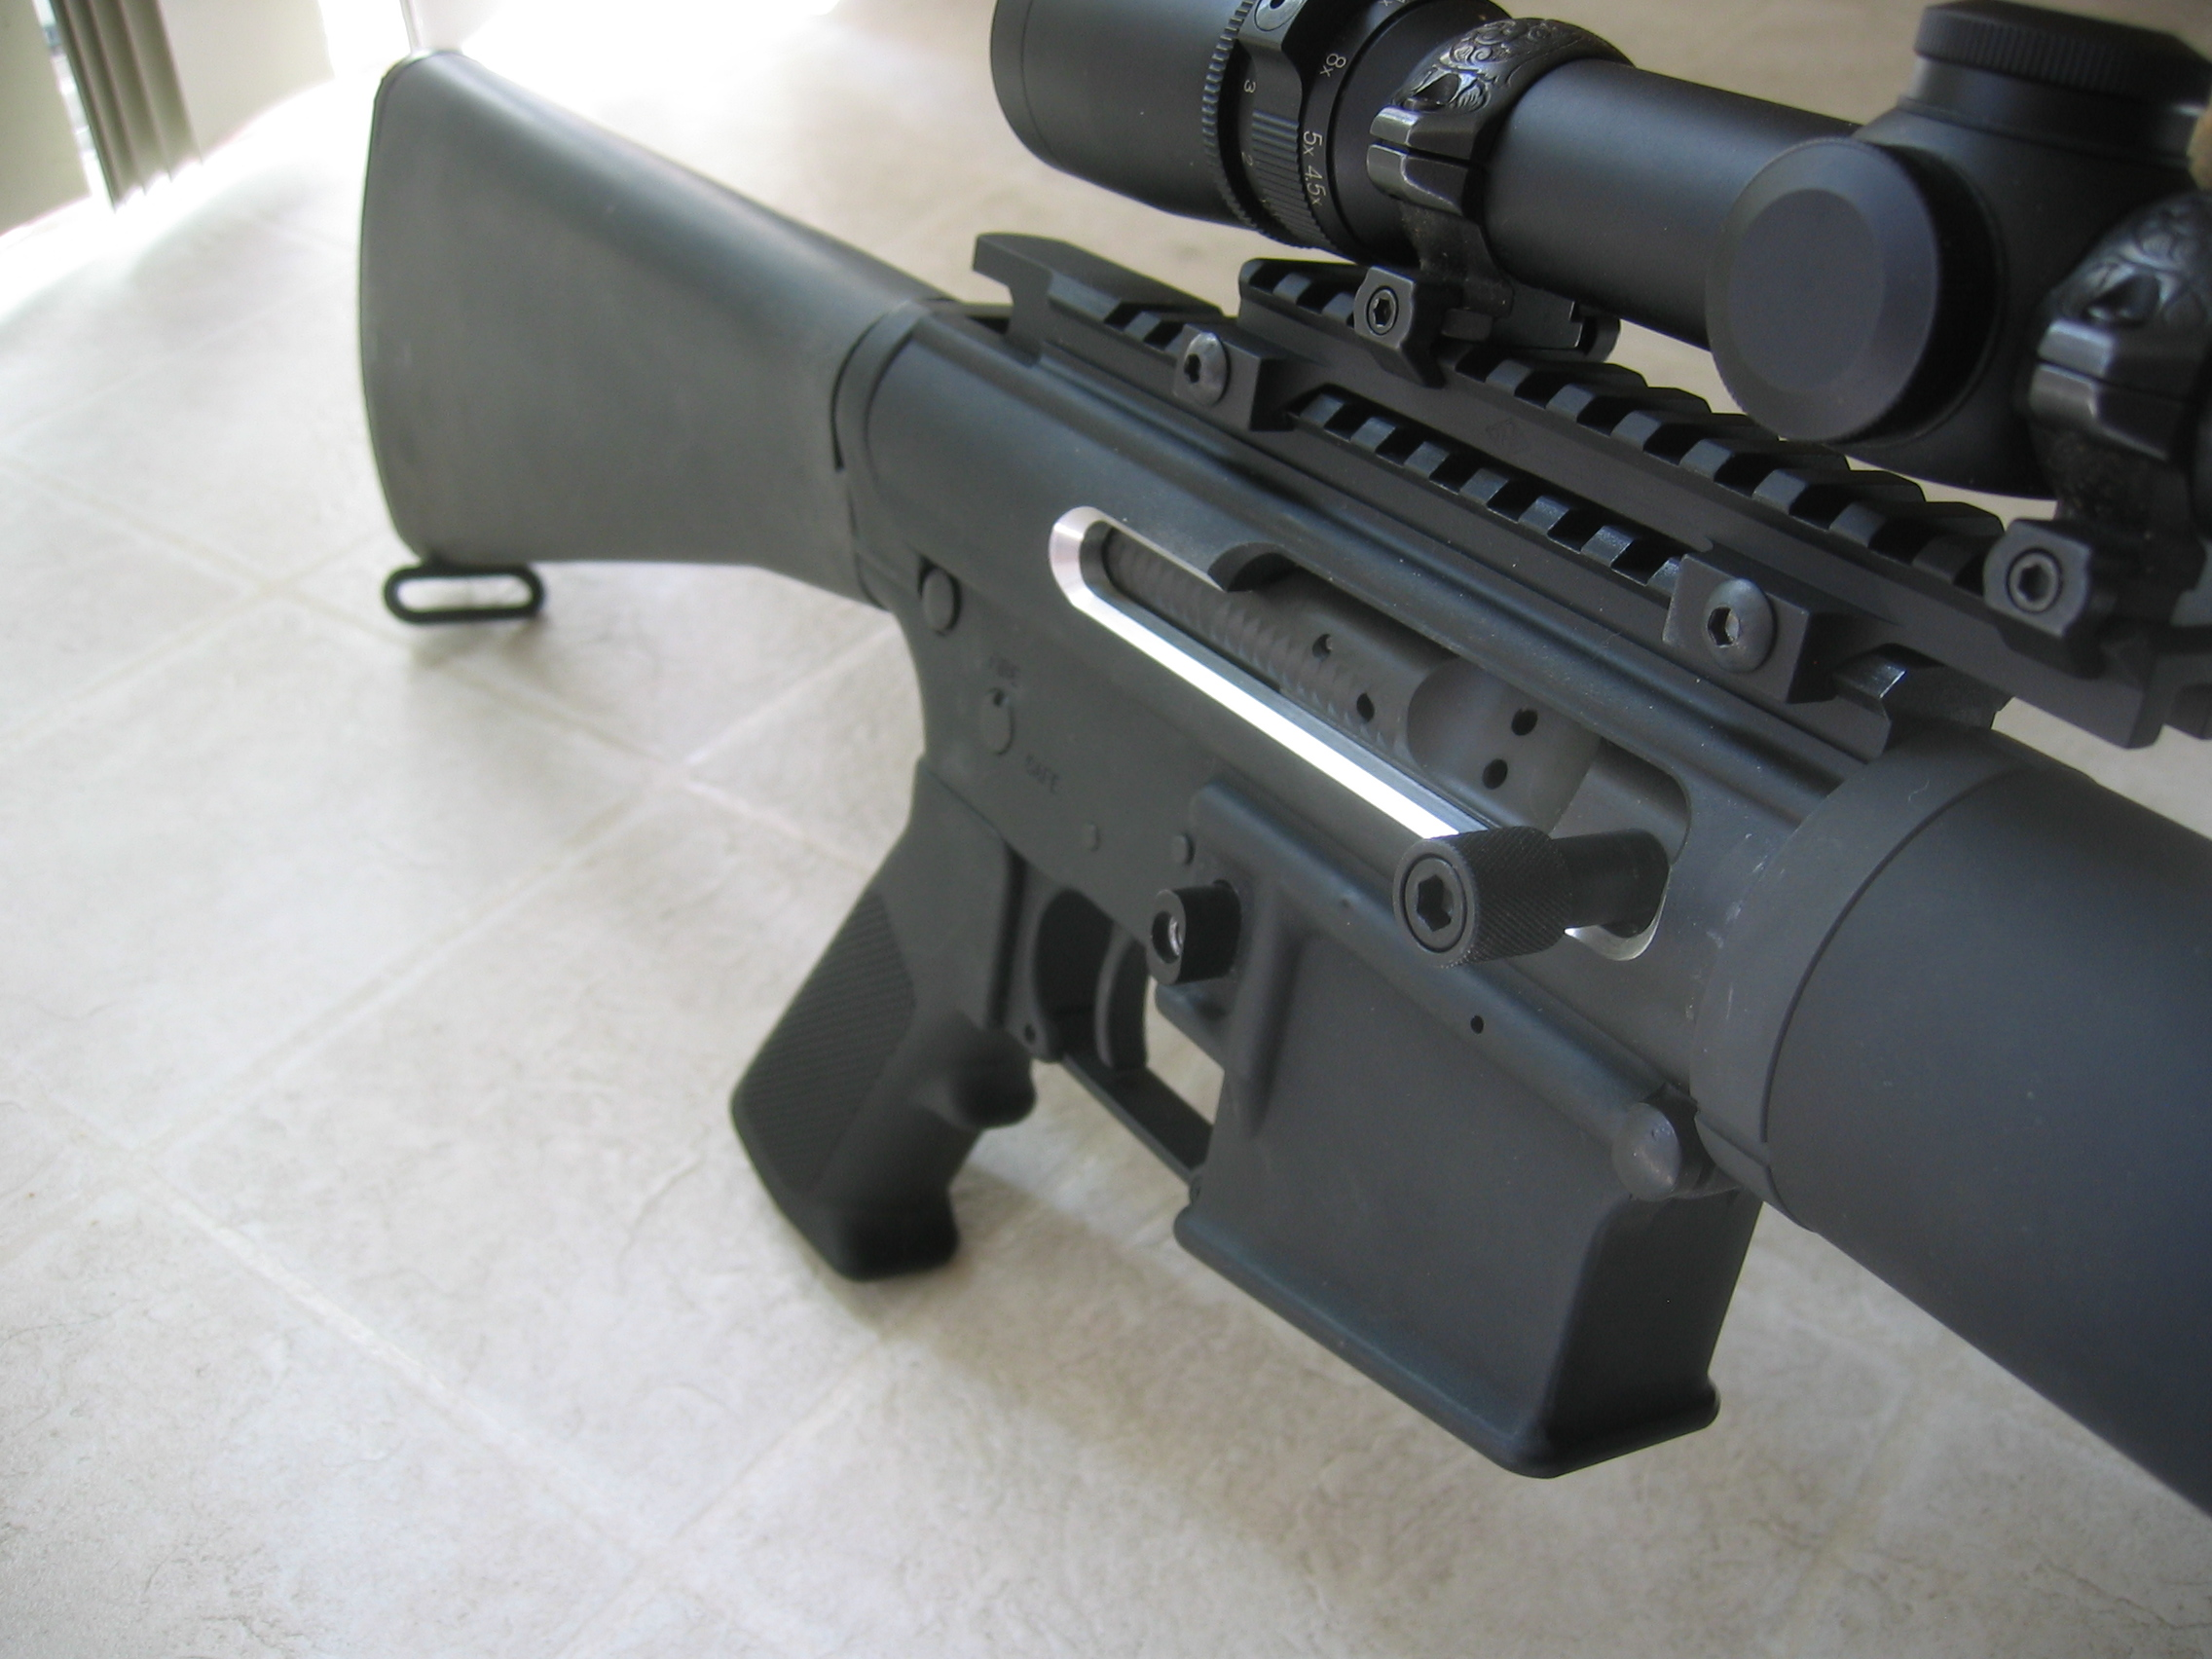 Bolt Action Ar Tech Guns And Food Blog